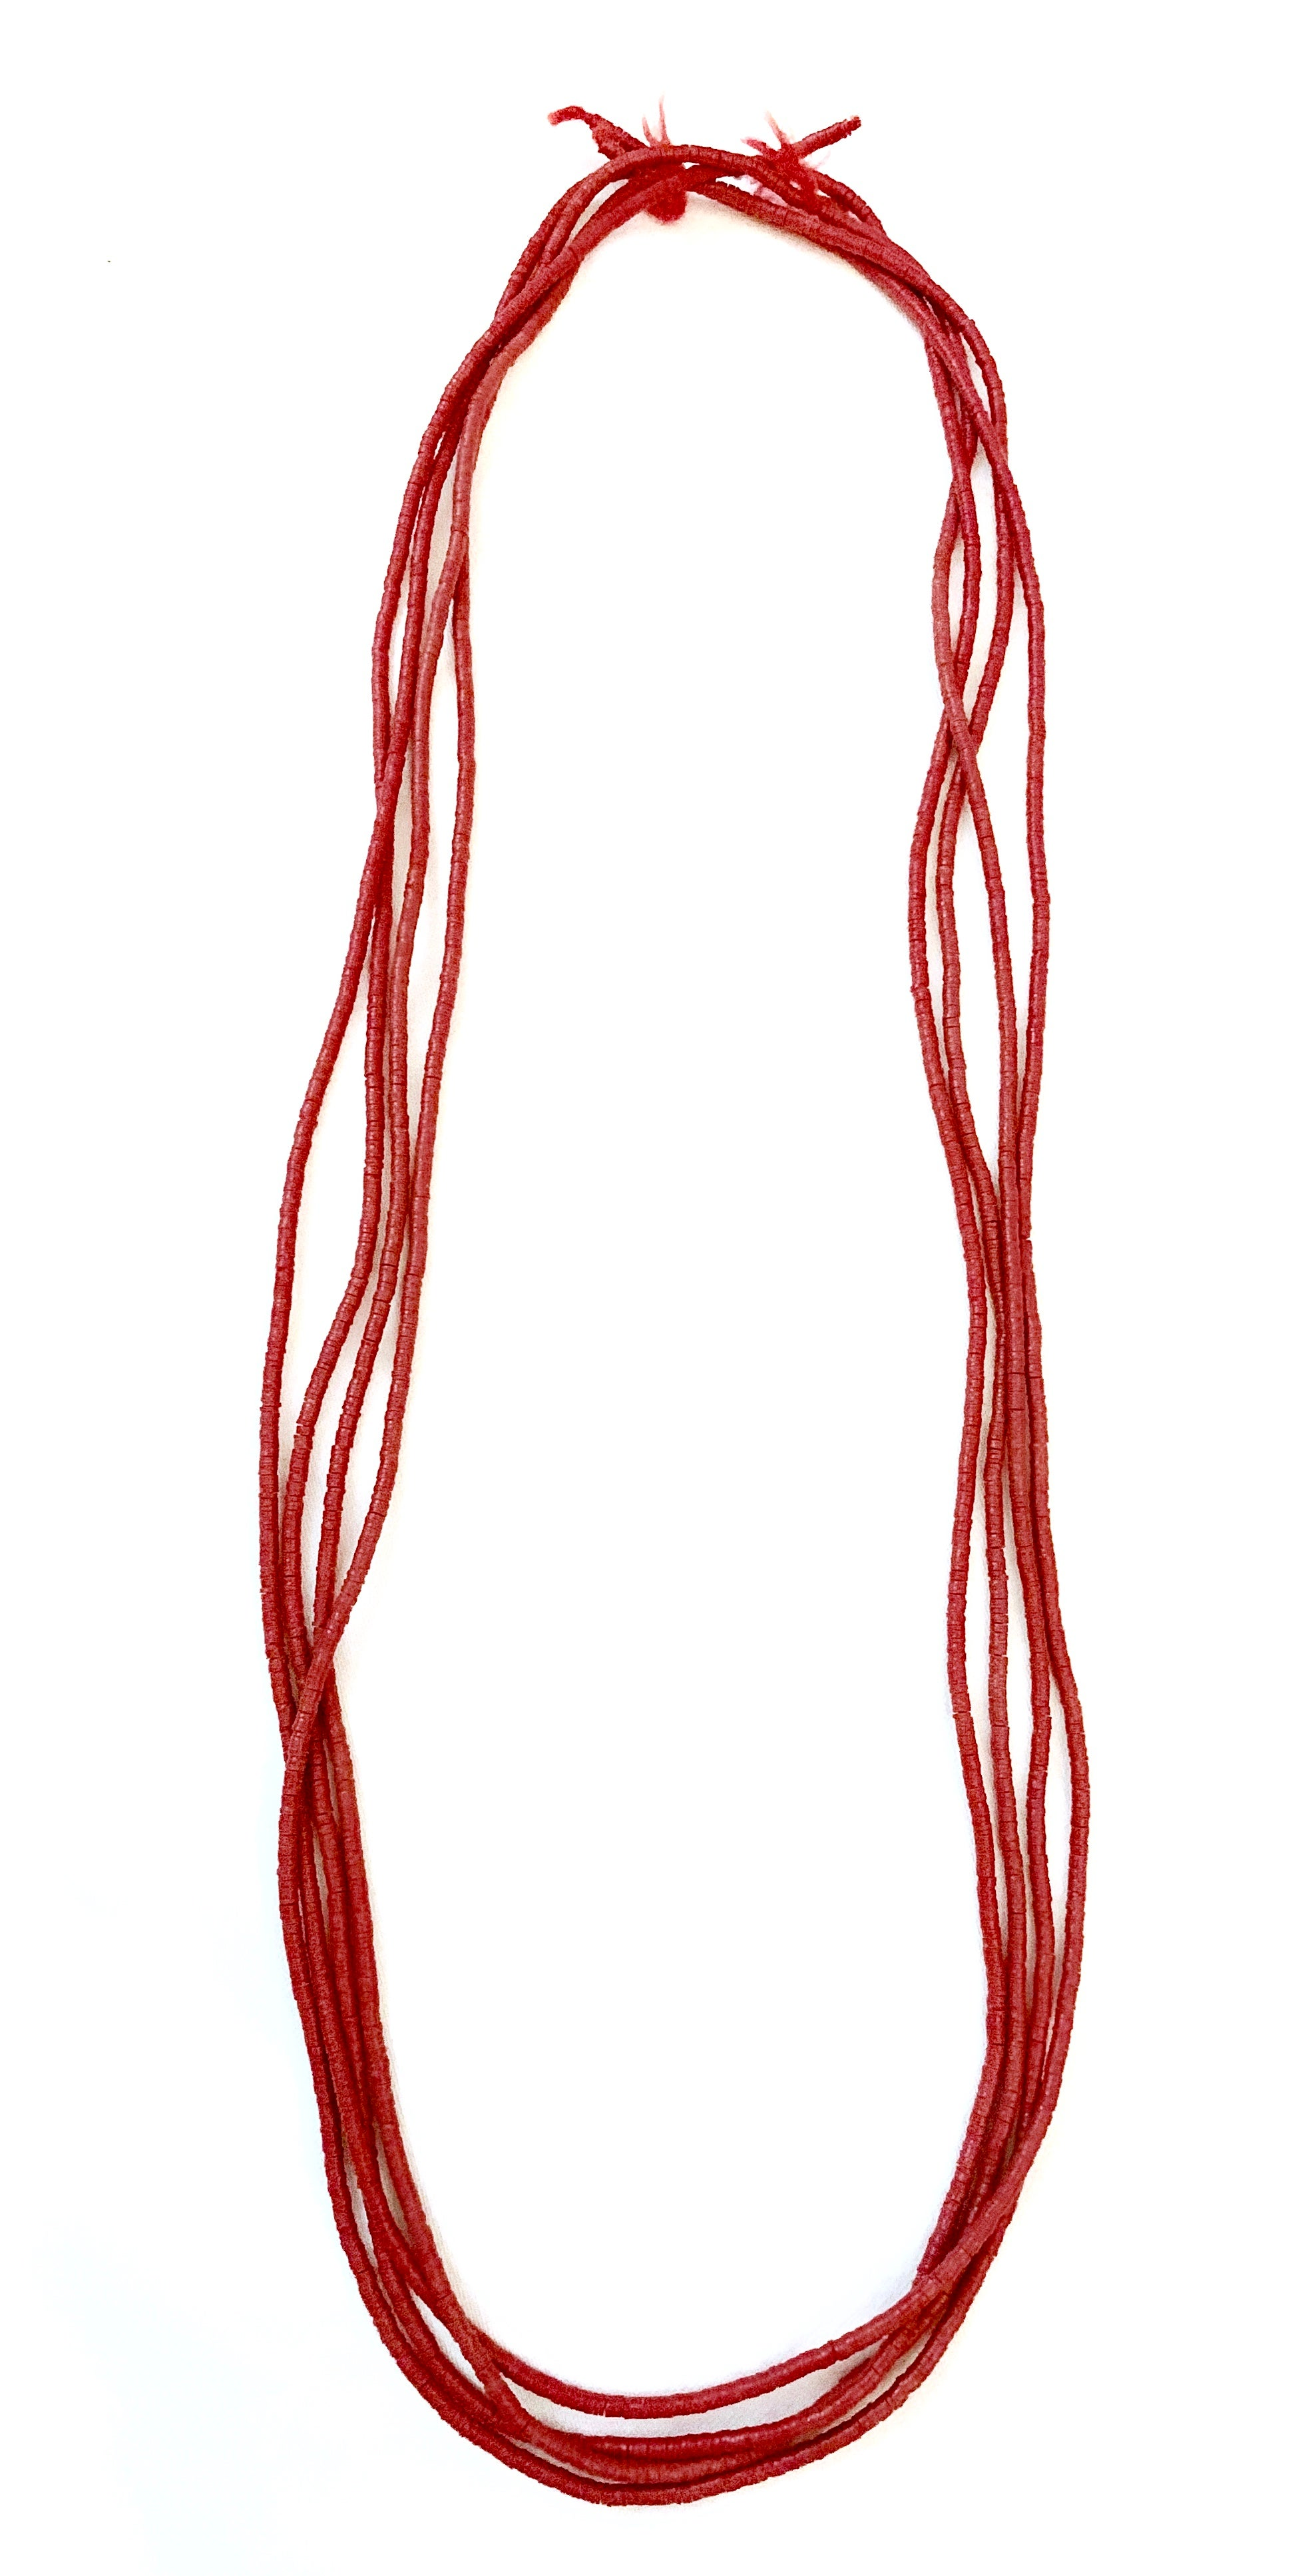 Image of Coral red Trade beads necklace